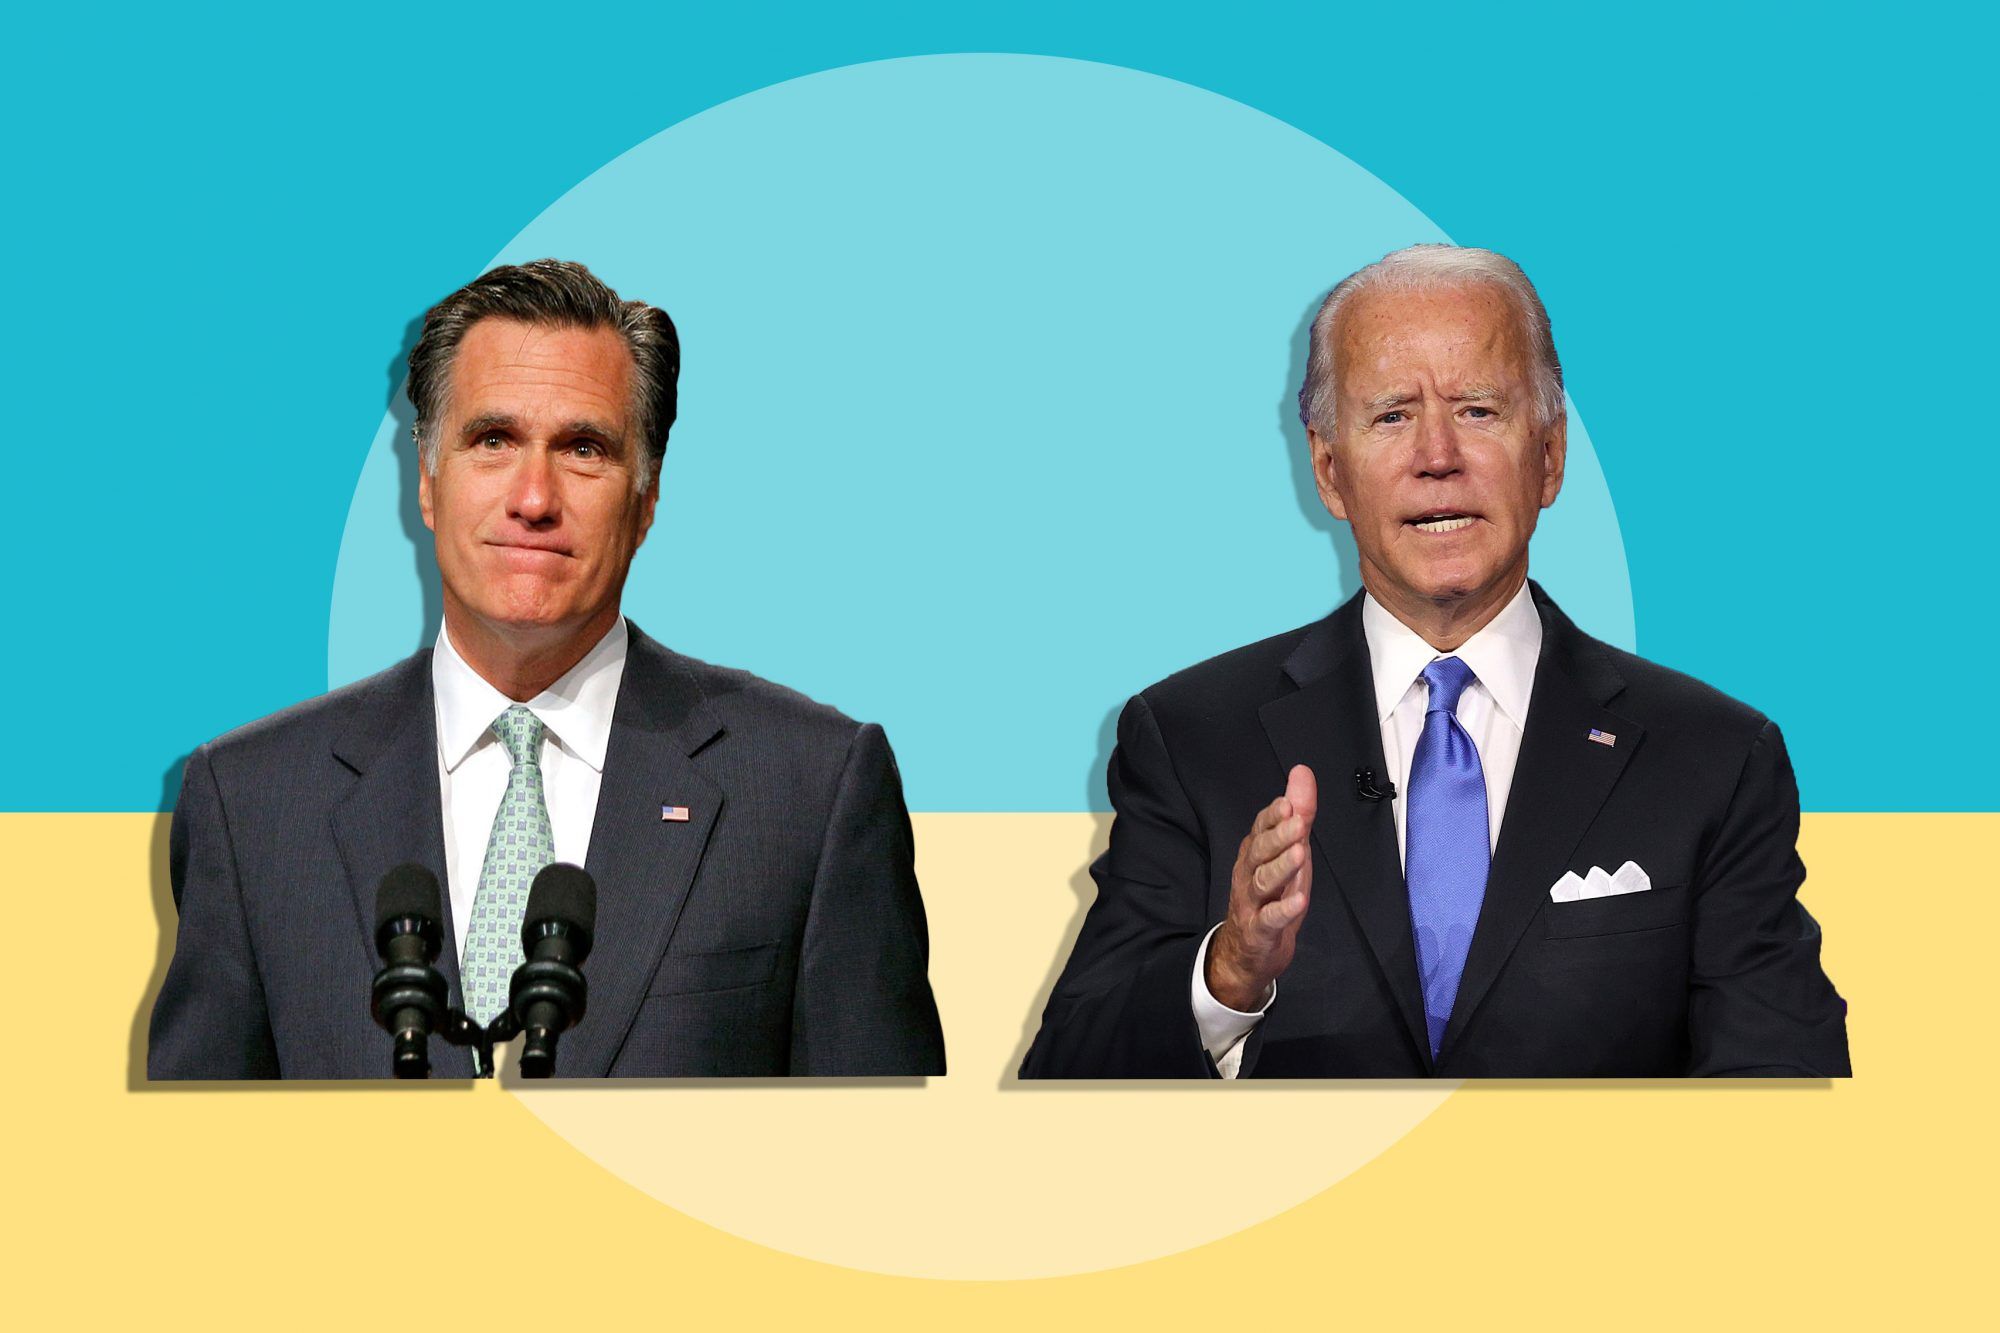 An image of Mitt Romney and Joe Biden on a colored background.